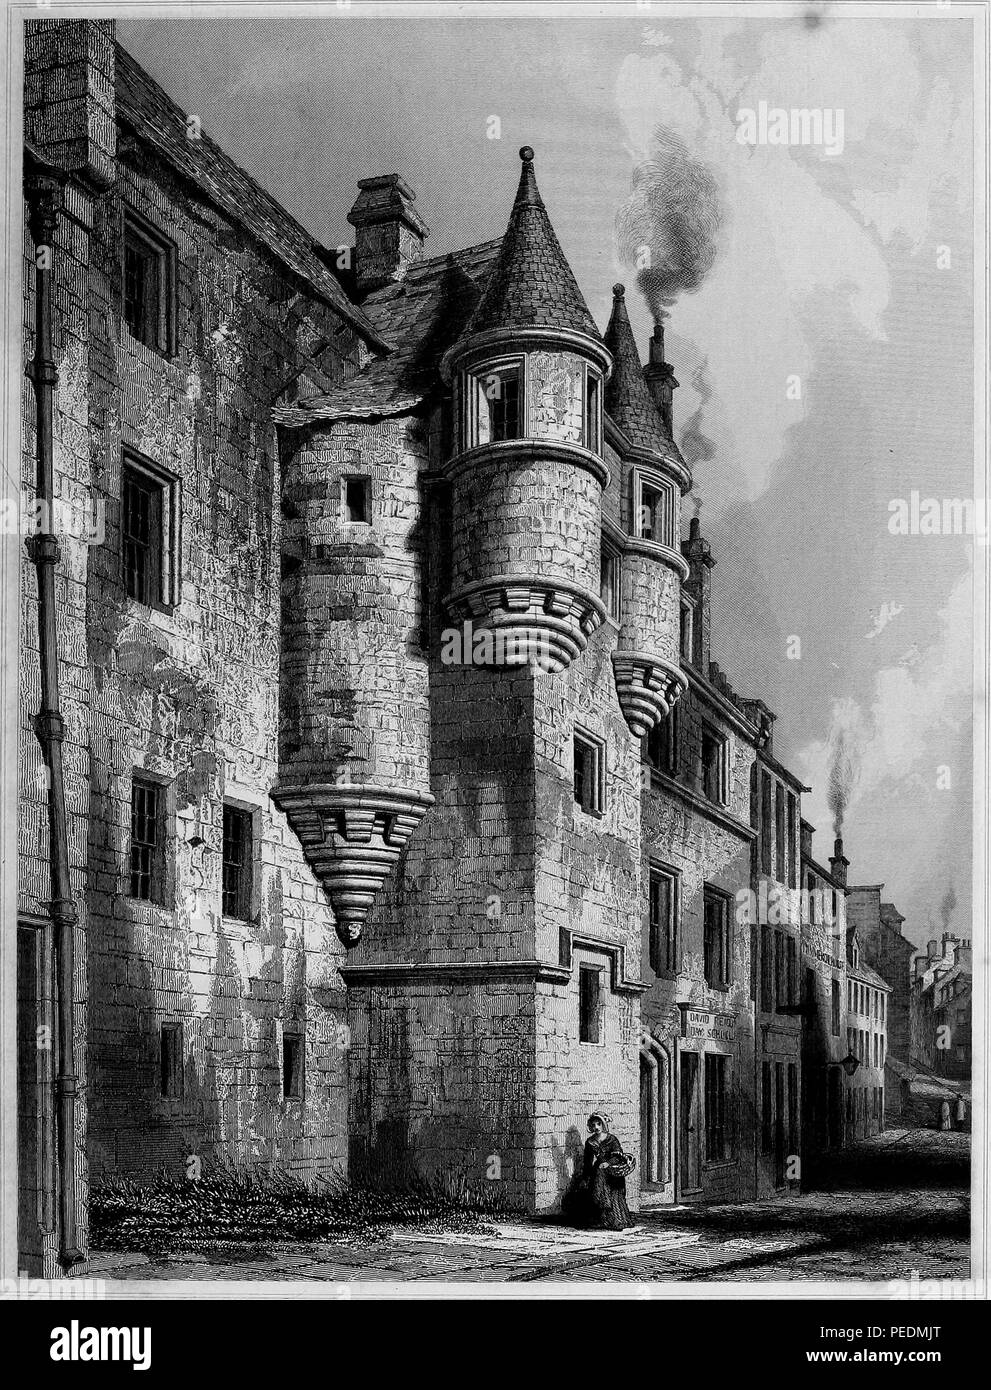 Black and white engraving, depicting an angled view of the medieval facade of 'School Hill' at The University and King's College of Aberdeen, located in Scotland, with a woman holding a basket in the foreground, drawn by RW Billings and engraved by J Sadler, 1845. Courtesy Internet Archive. () - Stock Image